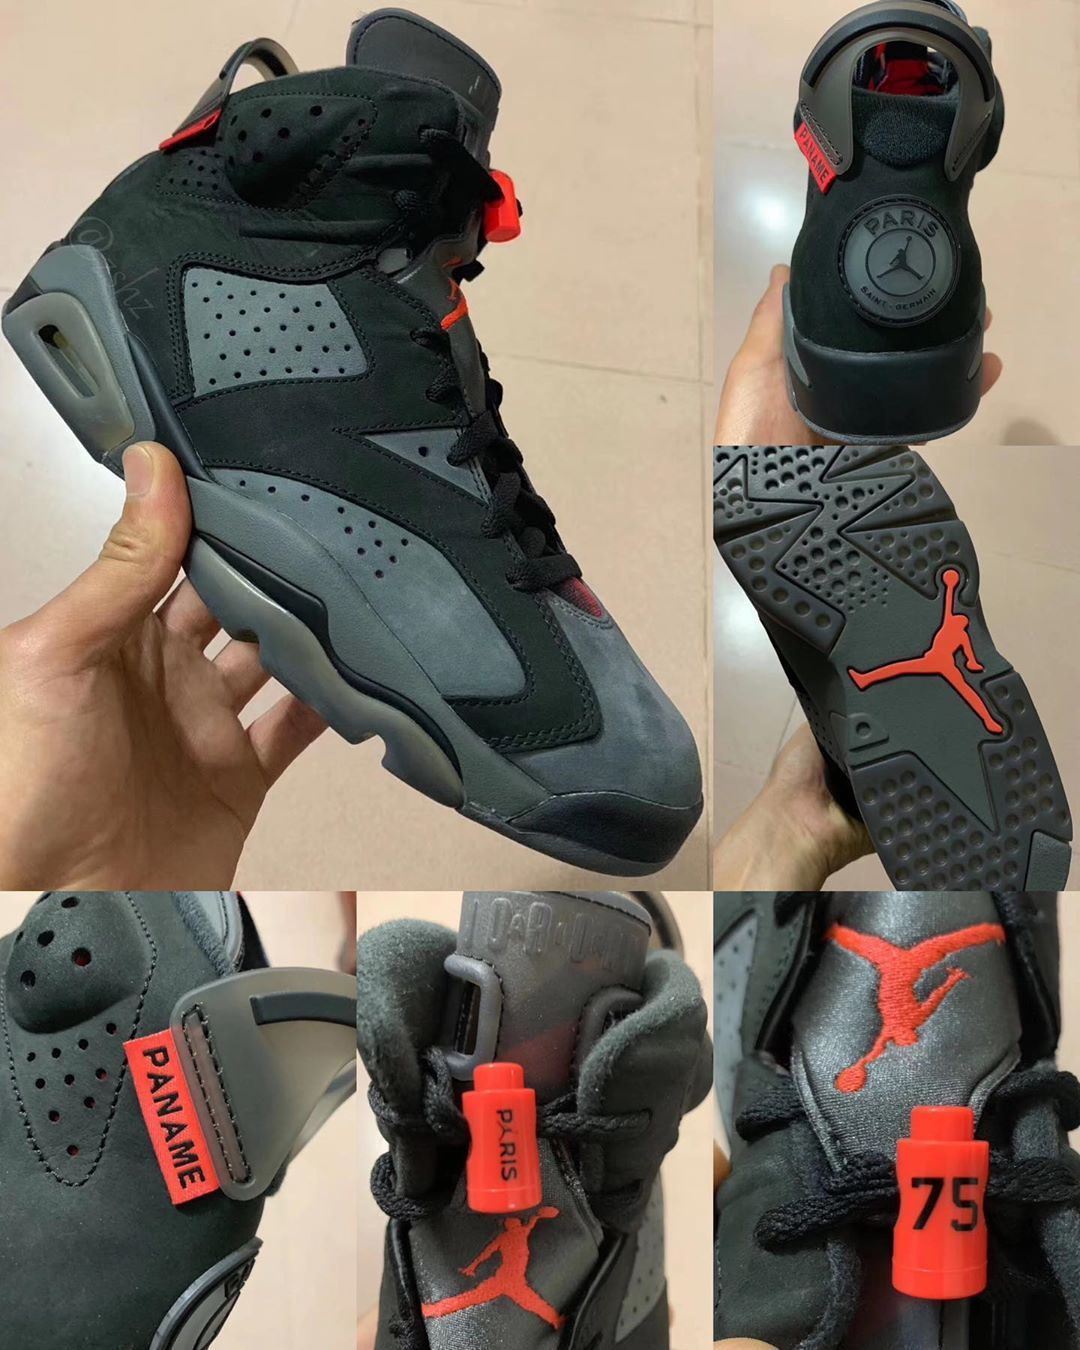 new concept ba14b 4b8eb 2019 Air Jordan Retro 6 #PSG Iron Grey/Infrared 23-Black ...